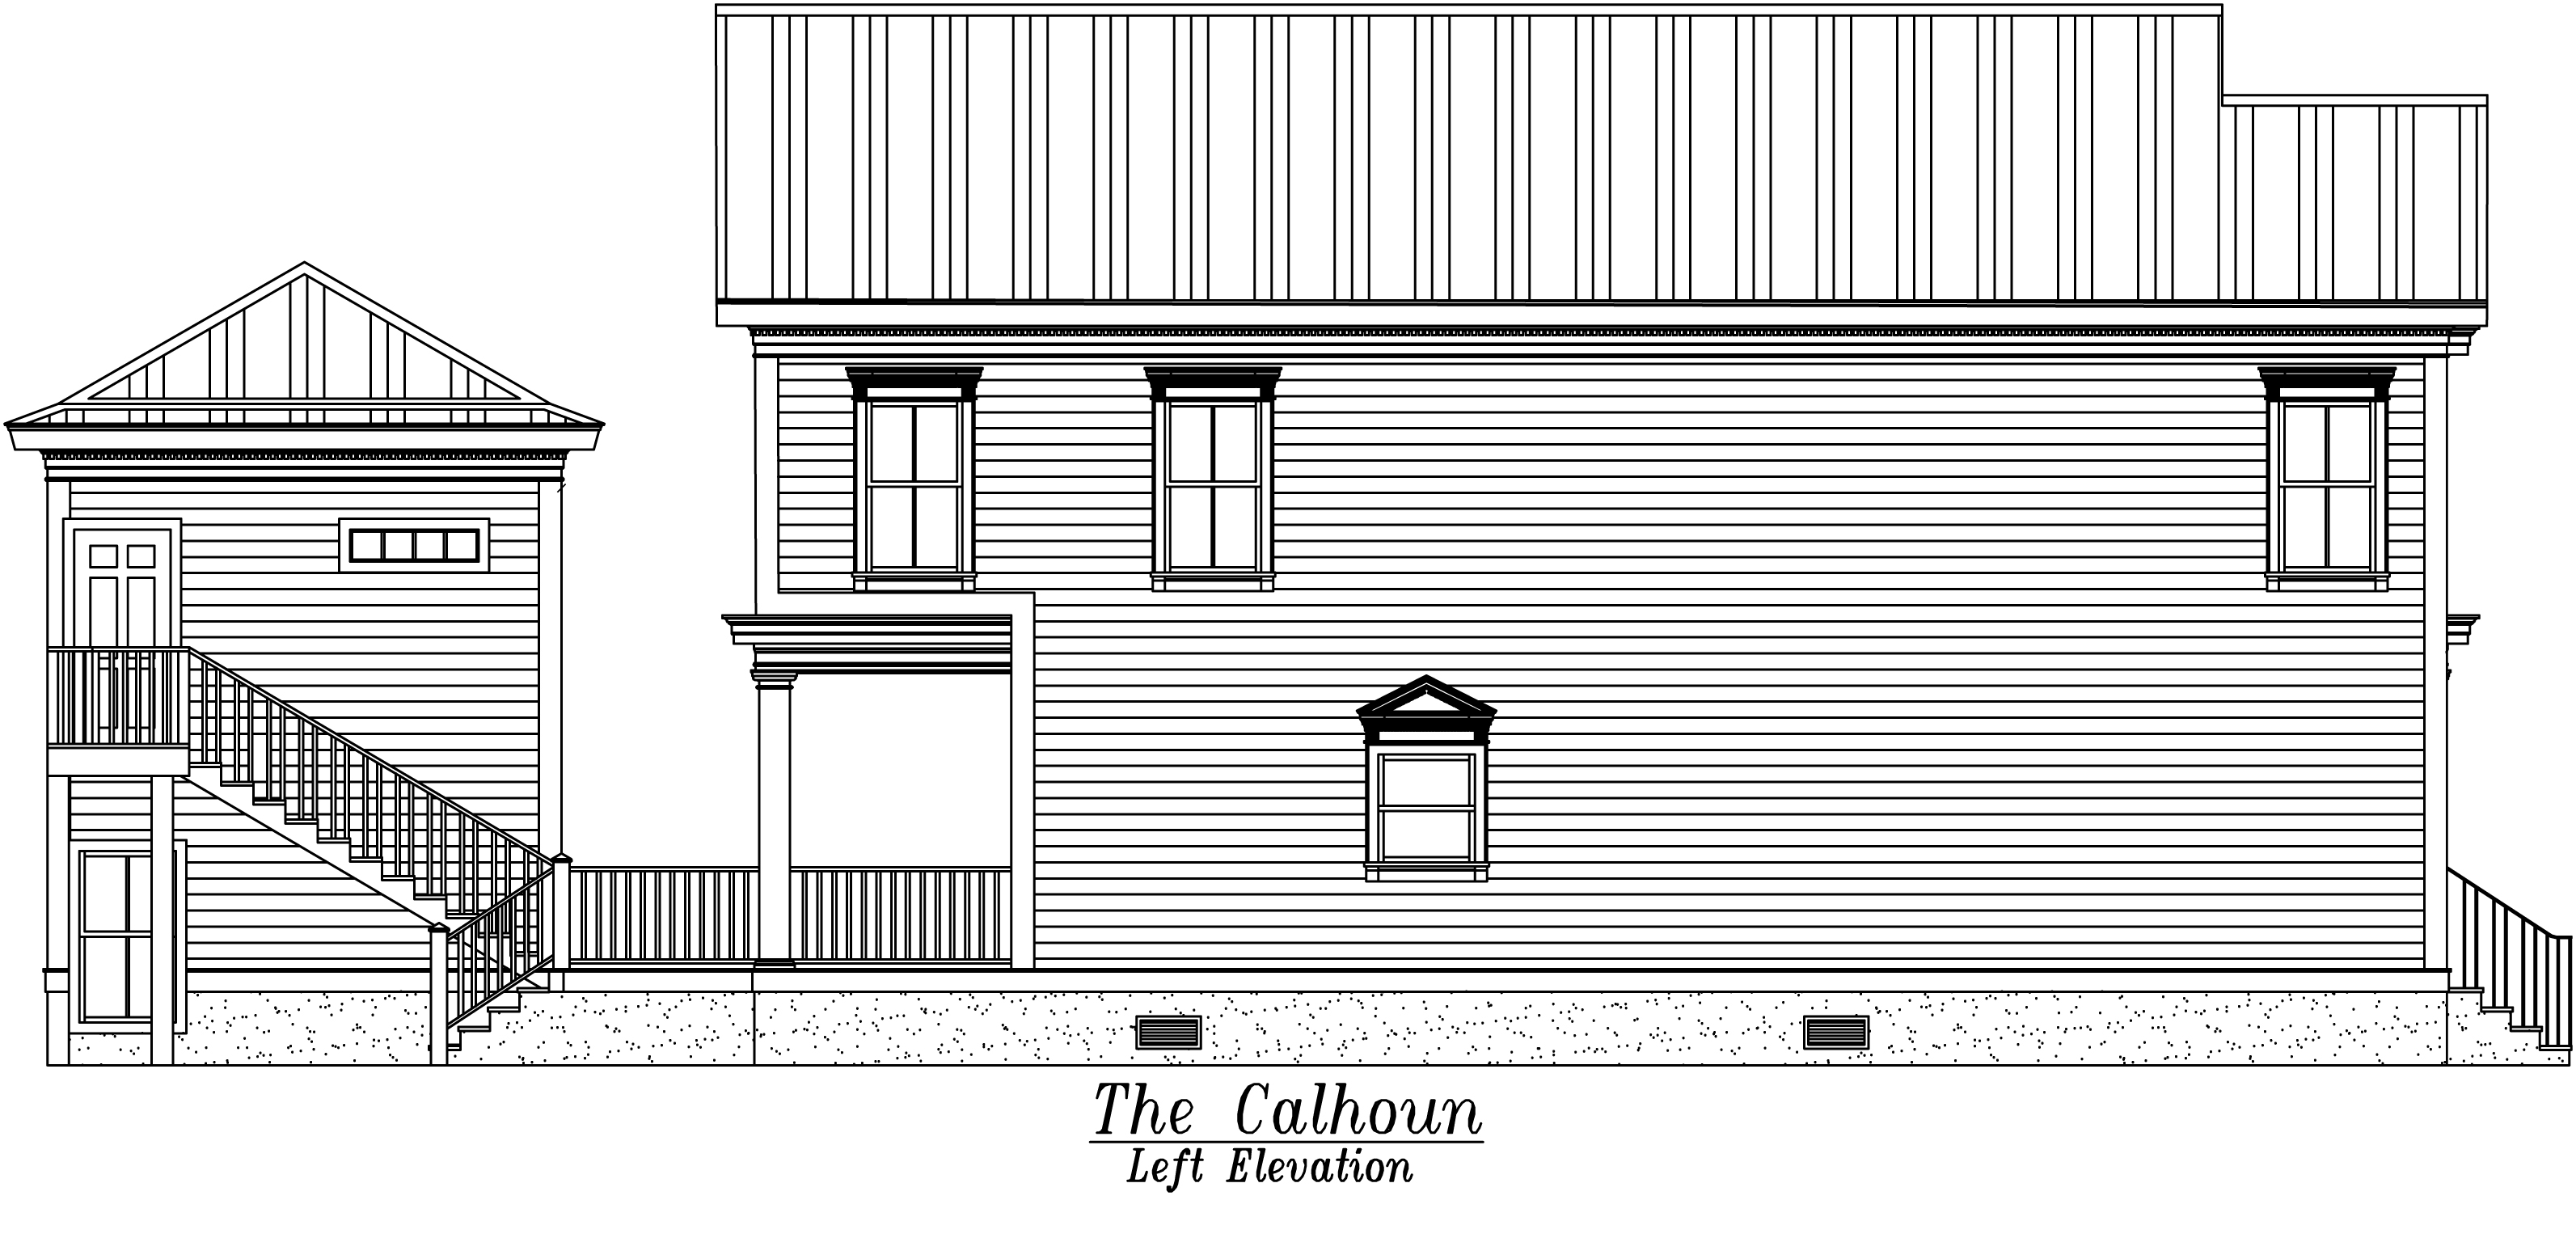 Calhoun Left Elevation